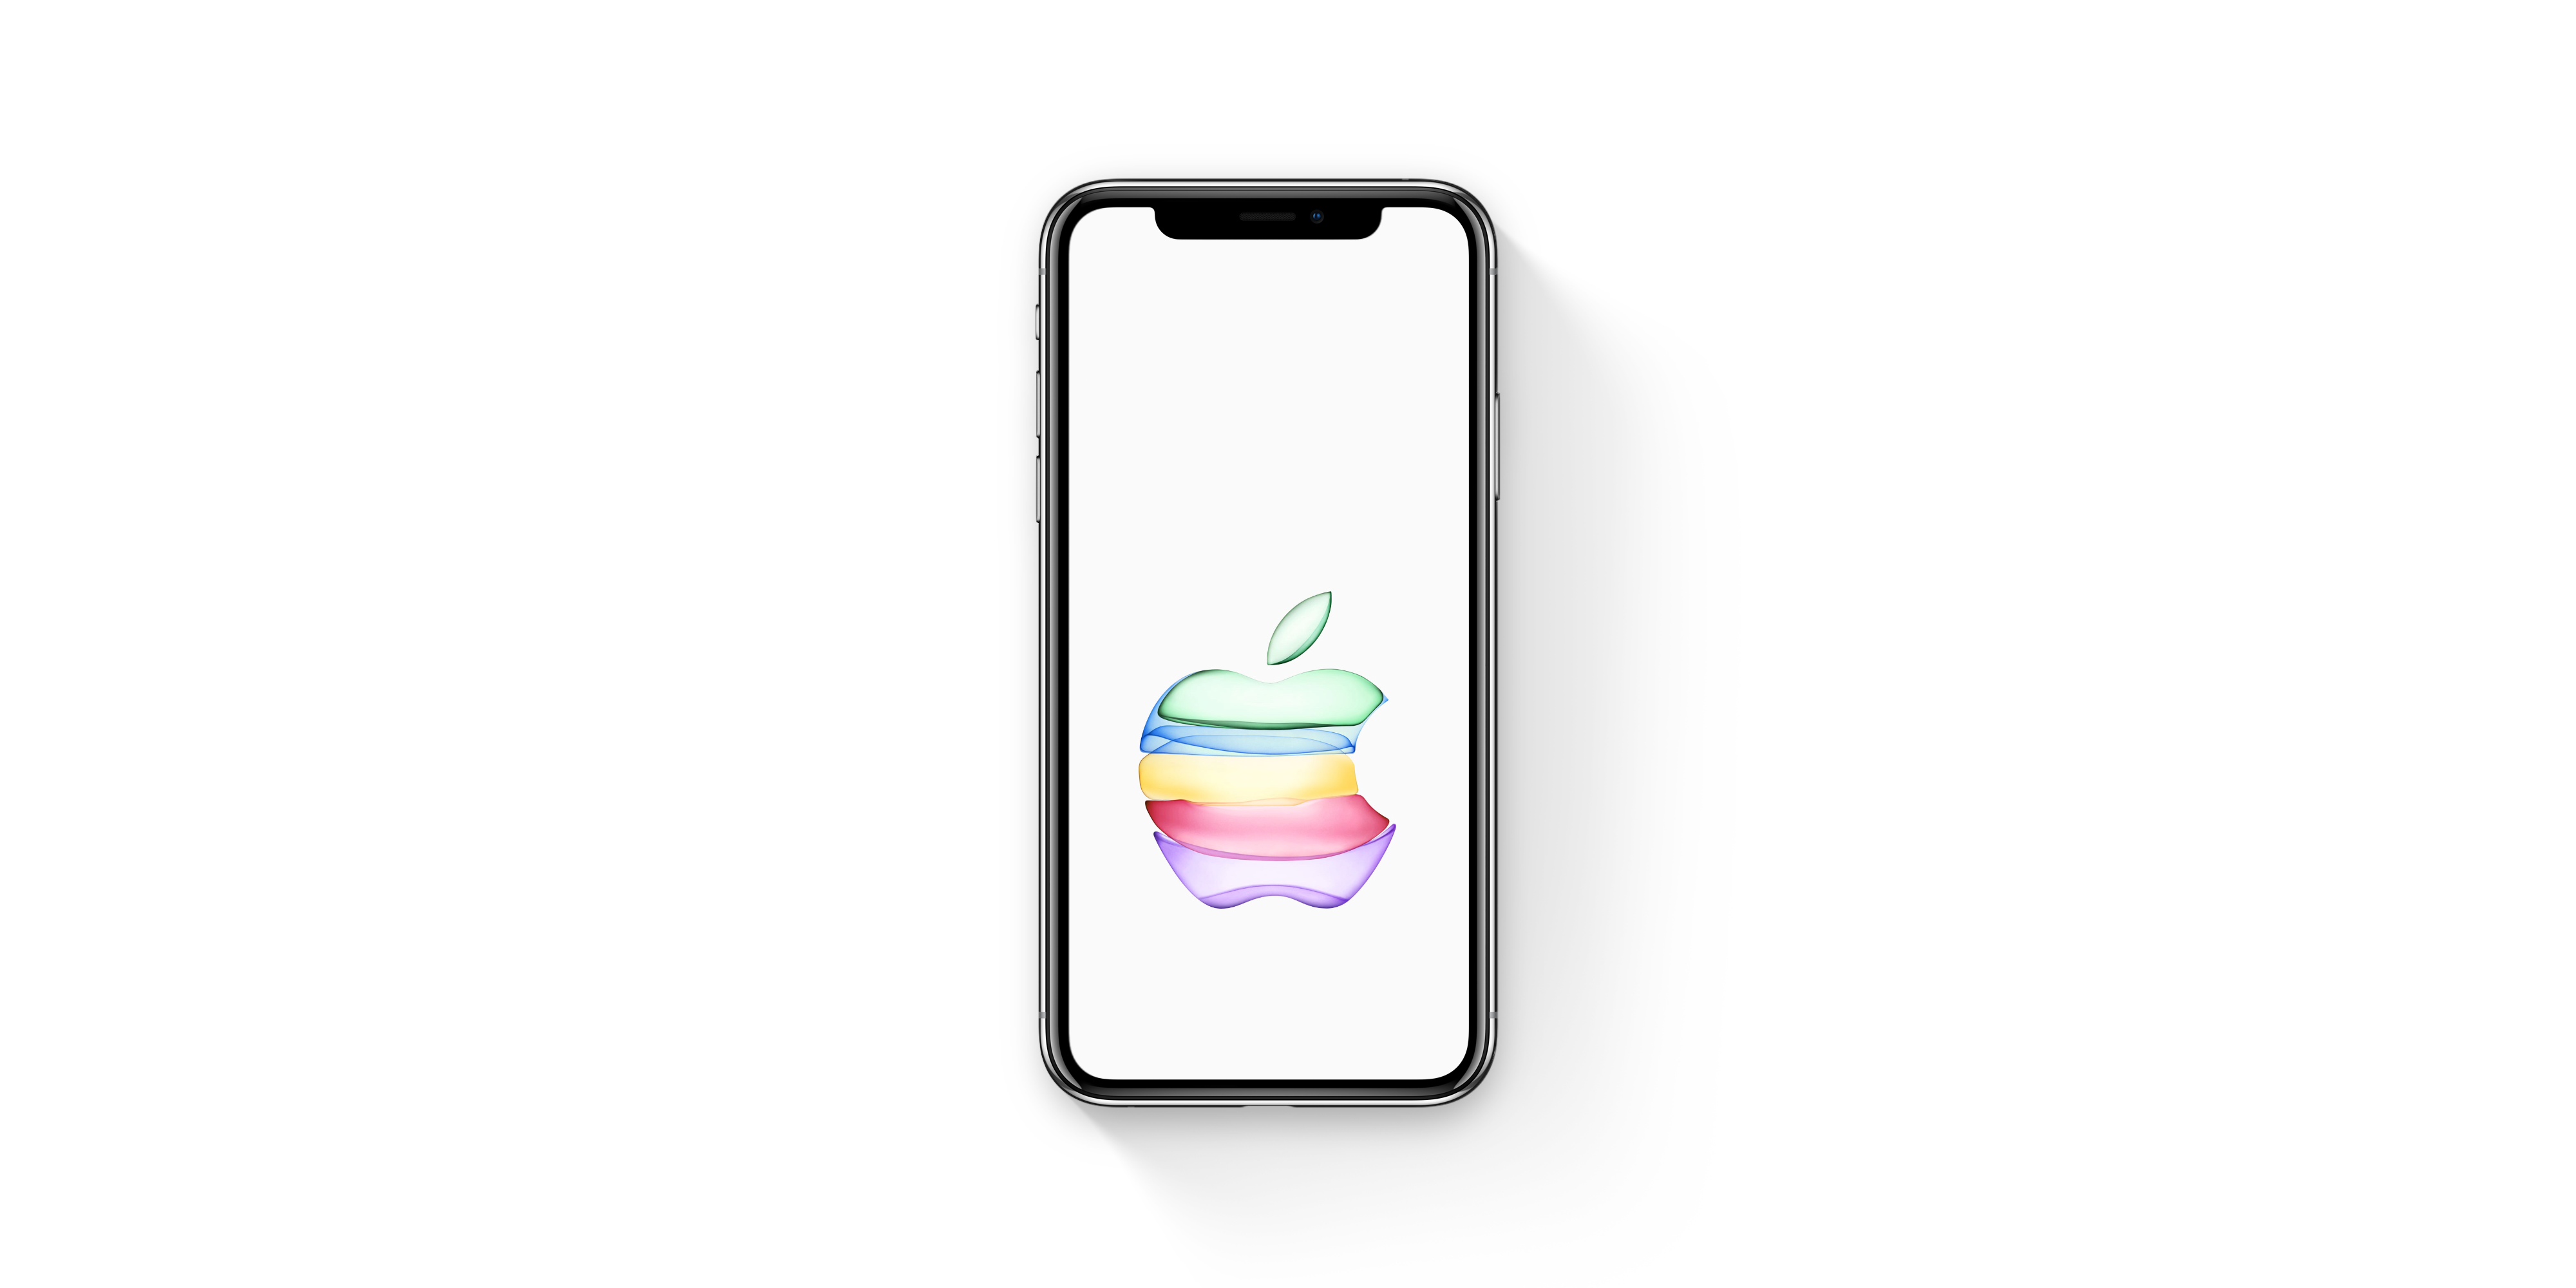 Apple Special Event Announced: Here's a Wallpaper